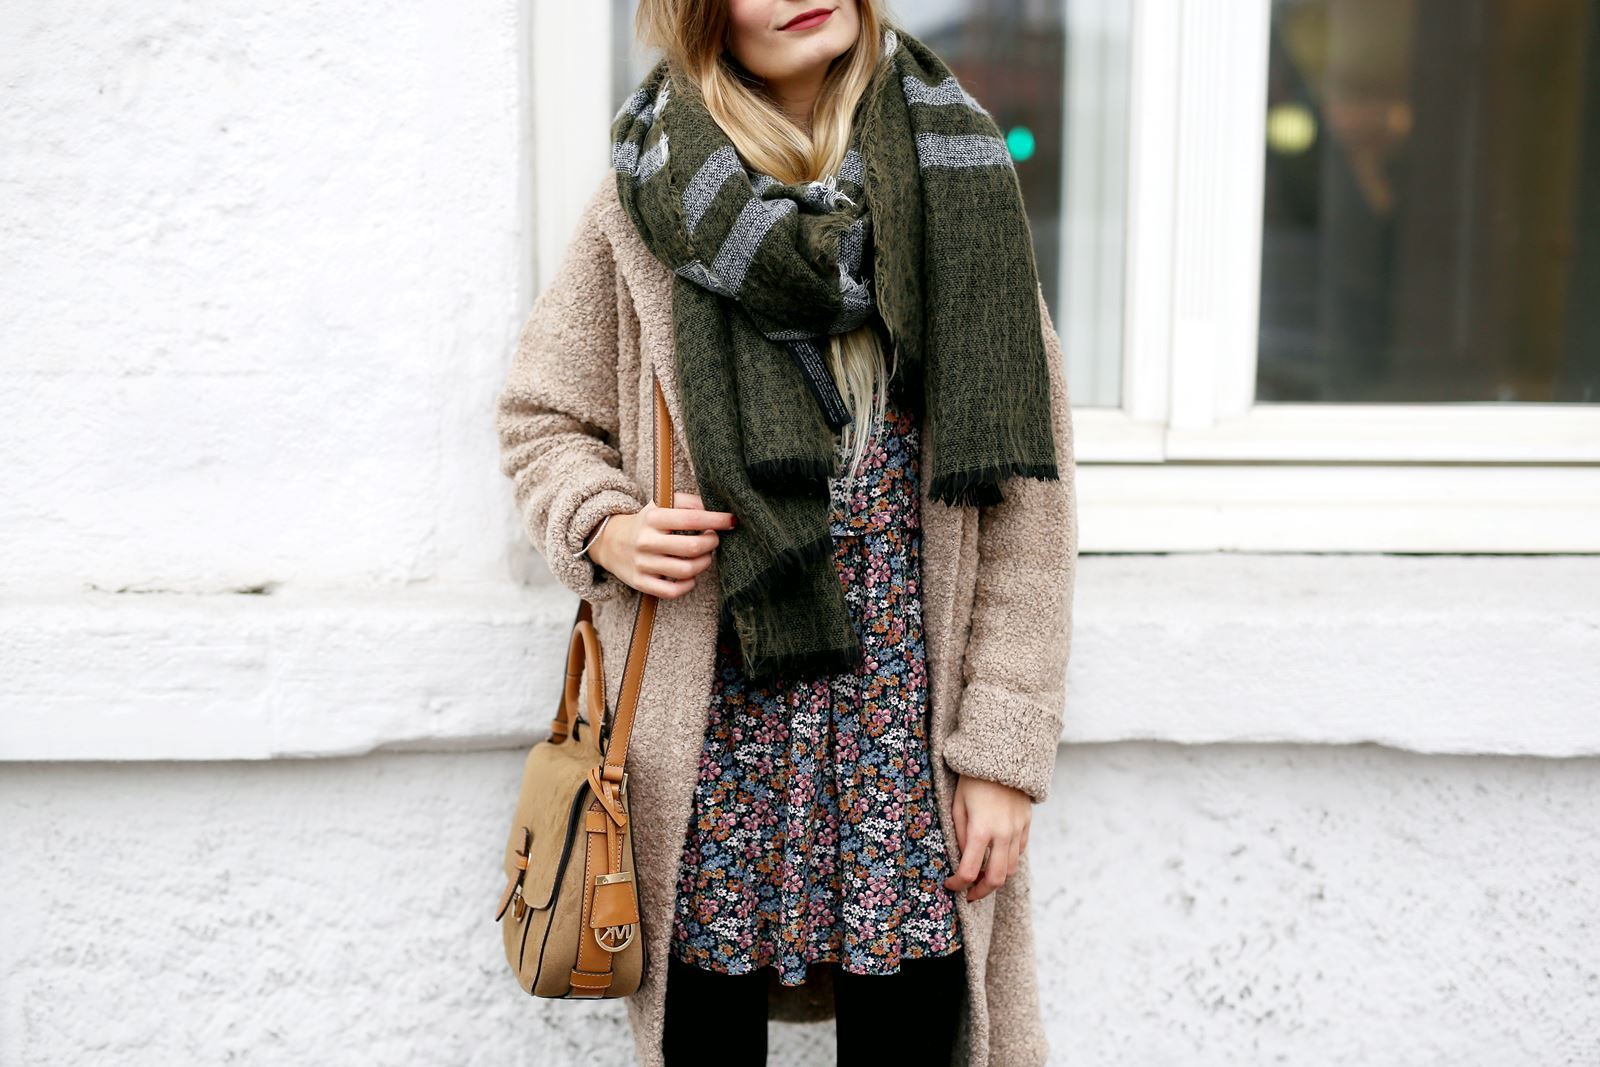 modeblog-fashion-blog-outfit-herbst-mantel-michael-kors-tasche-9